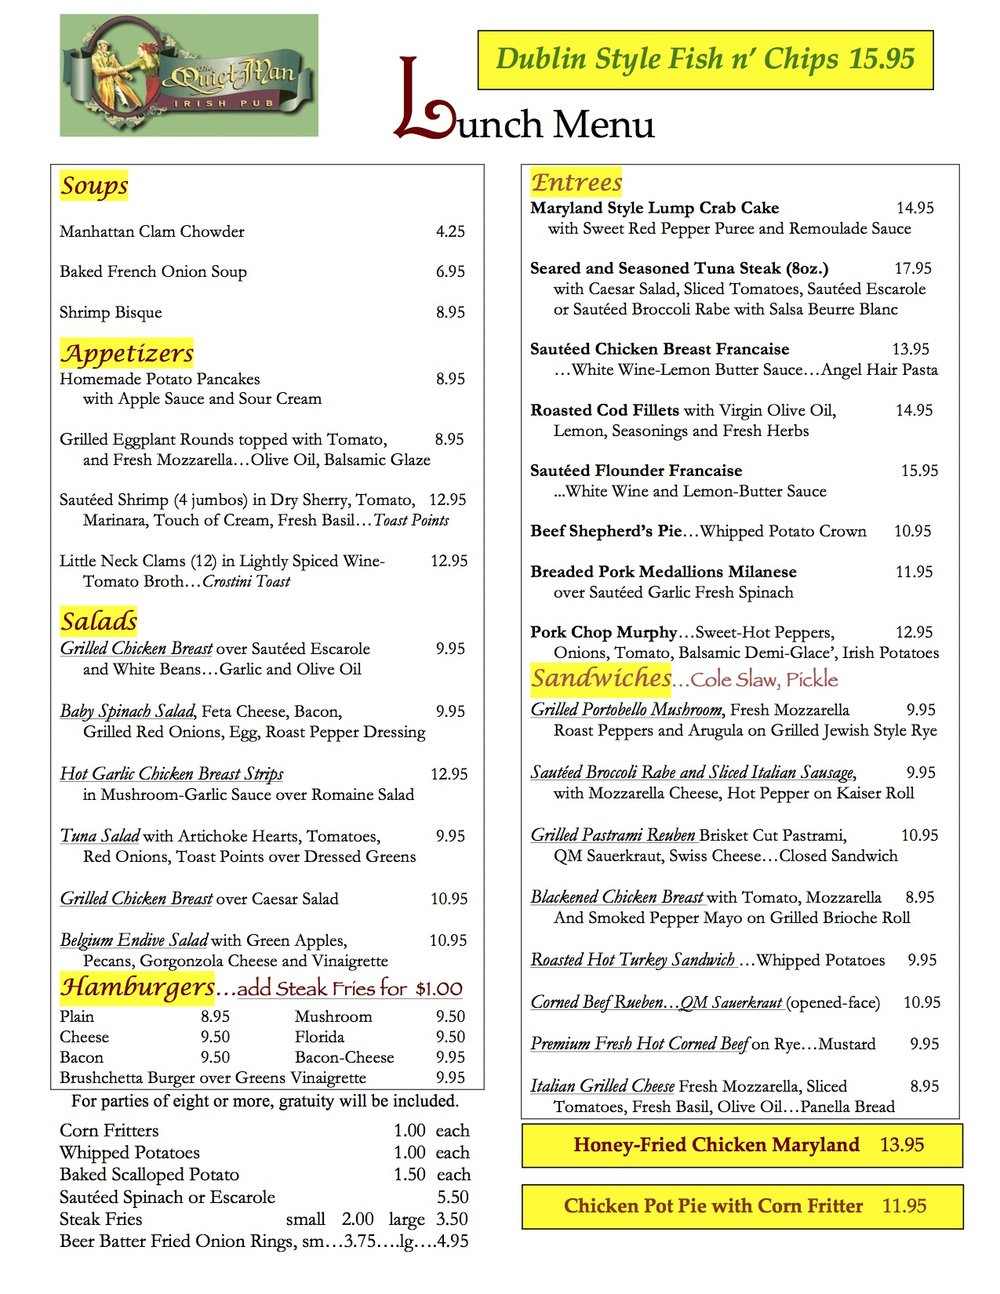 Quiet Man Lunch Menu 91117.jpg